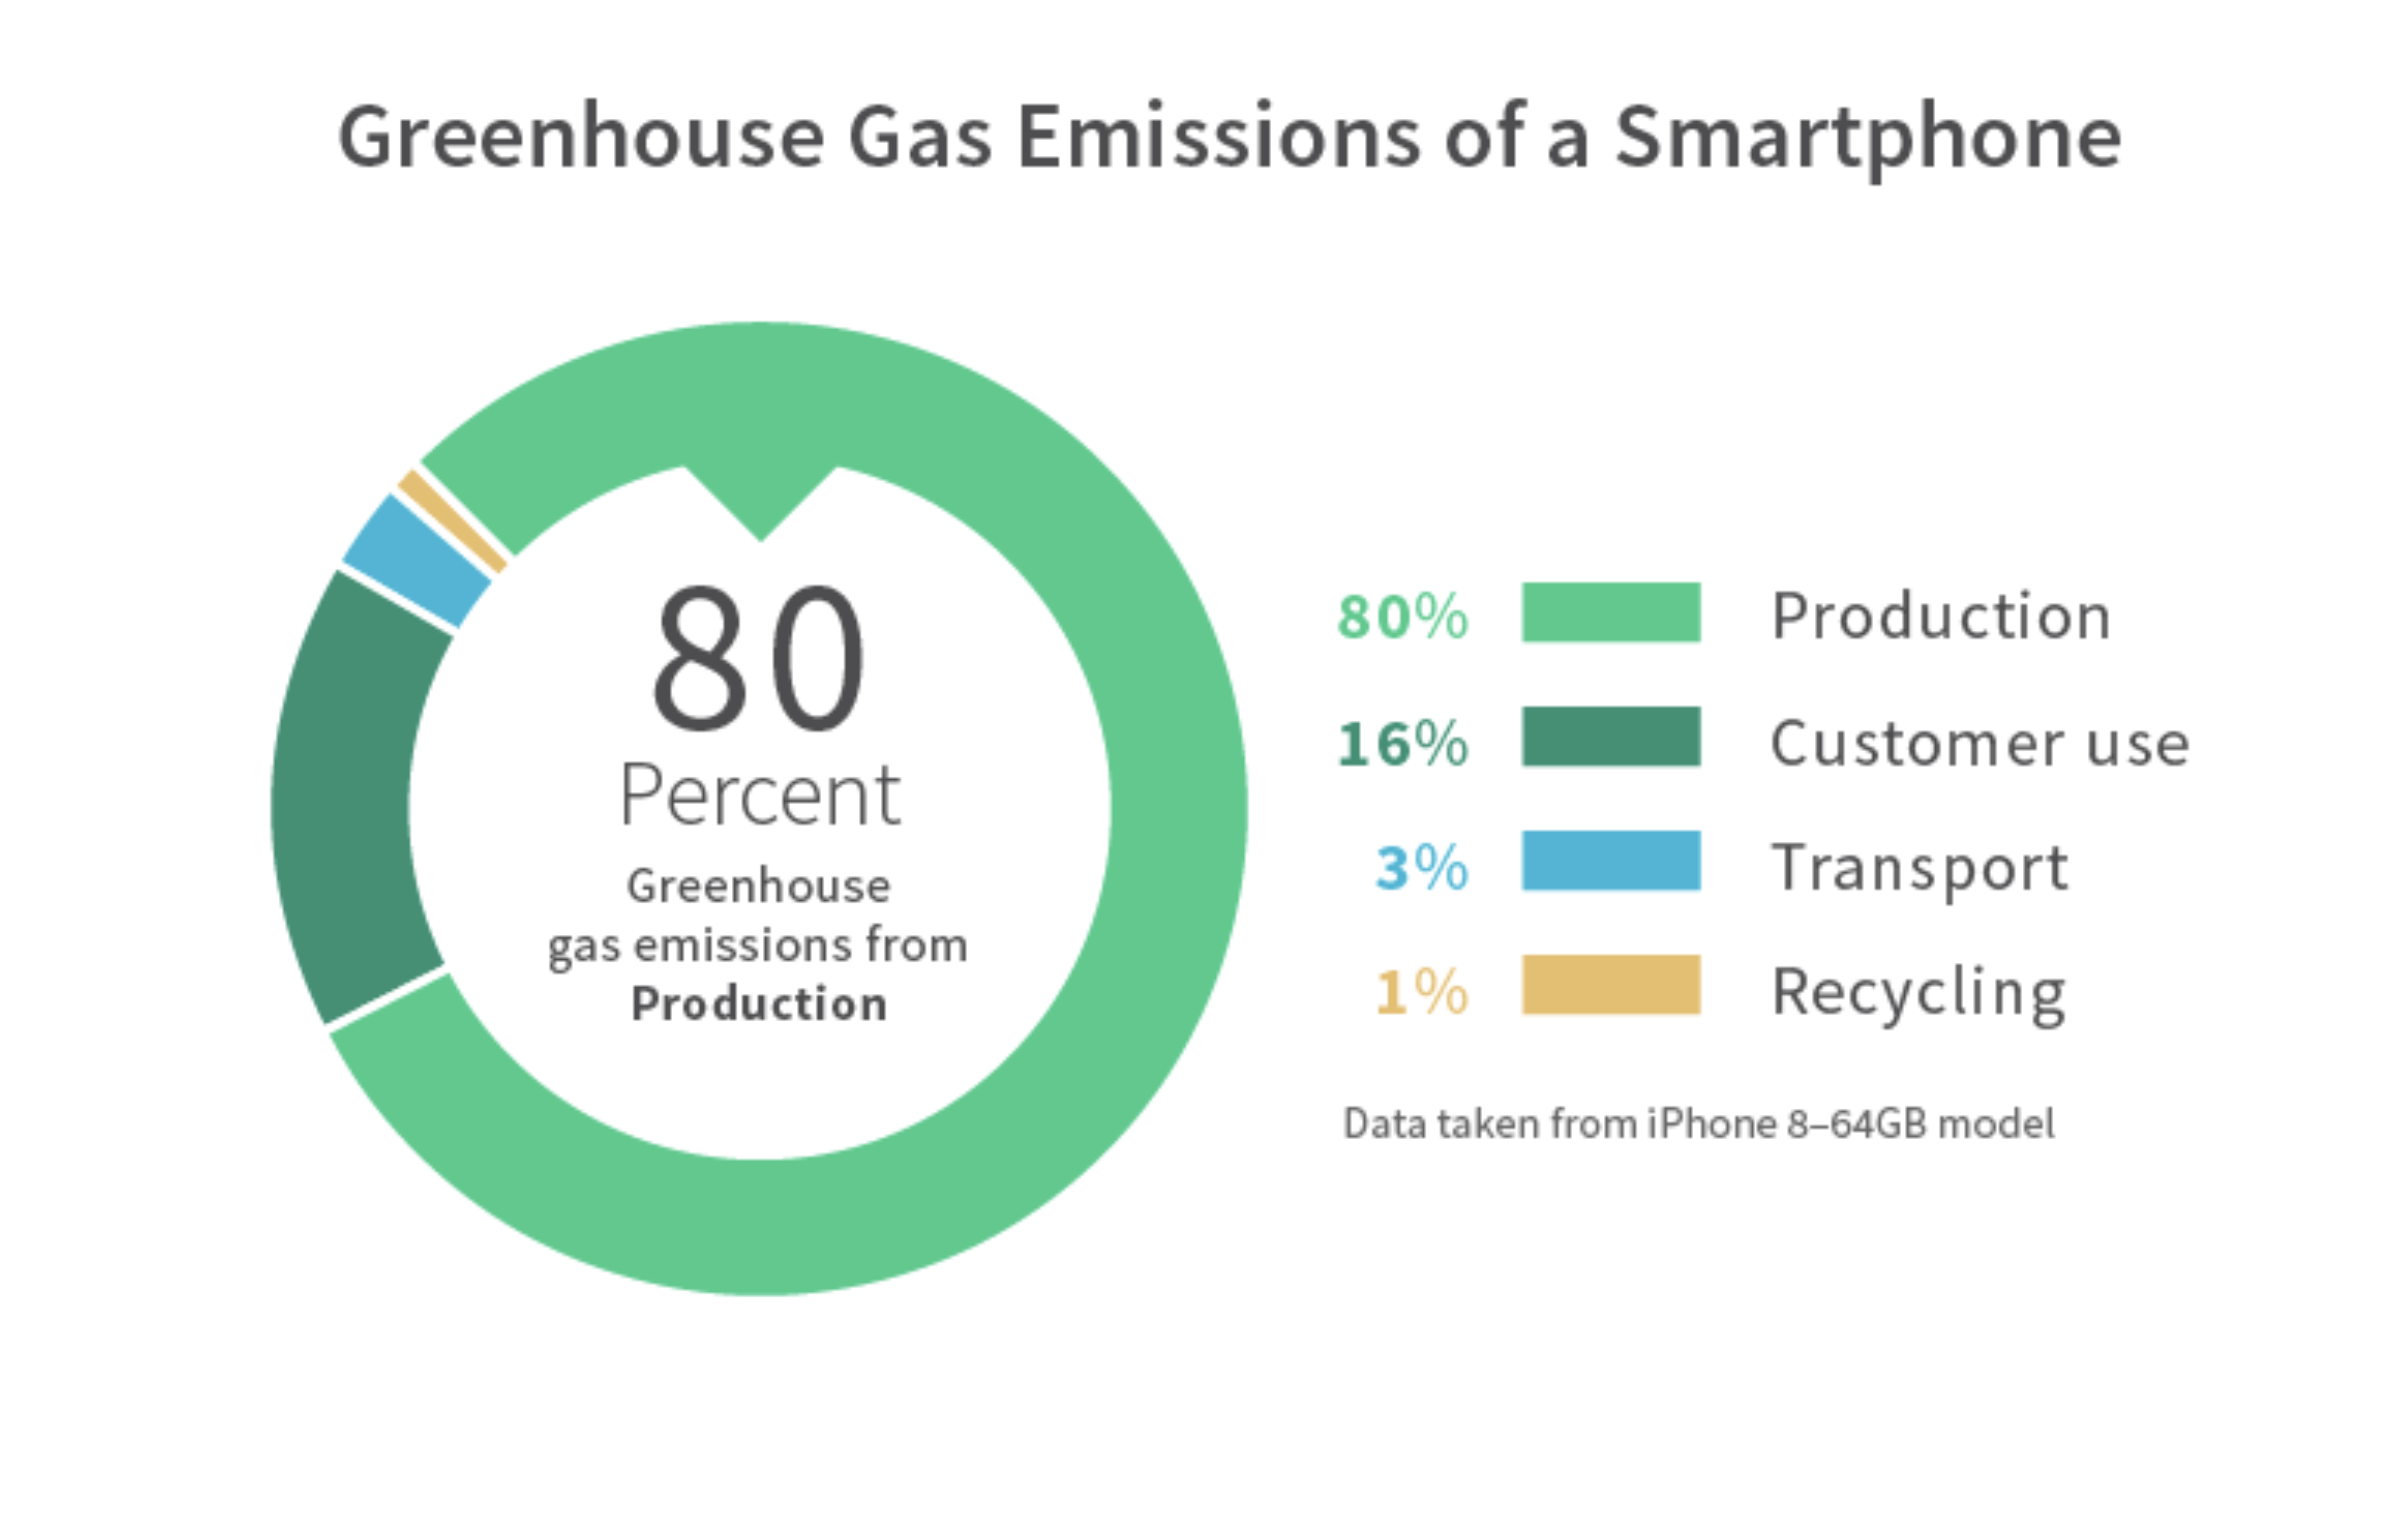 The biggest environmental impact of smartphones occurs during manufacture